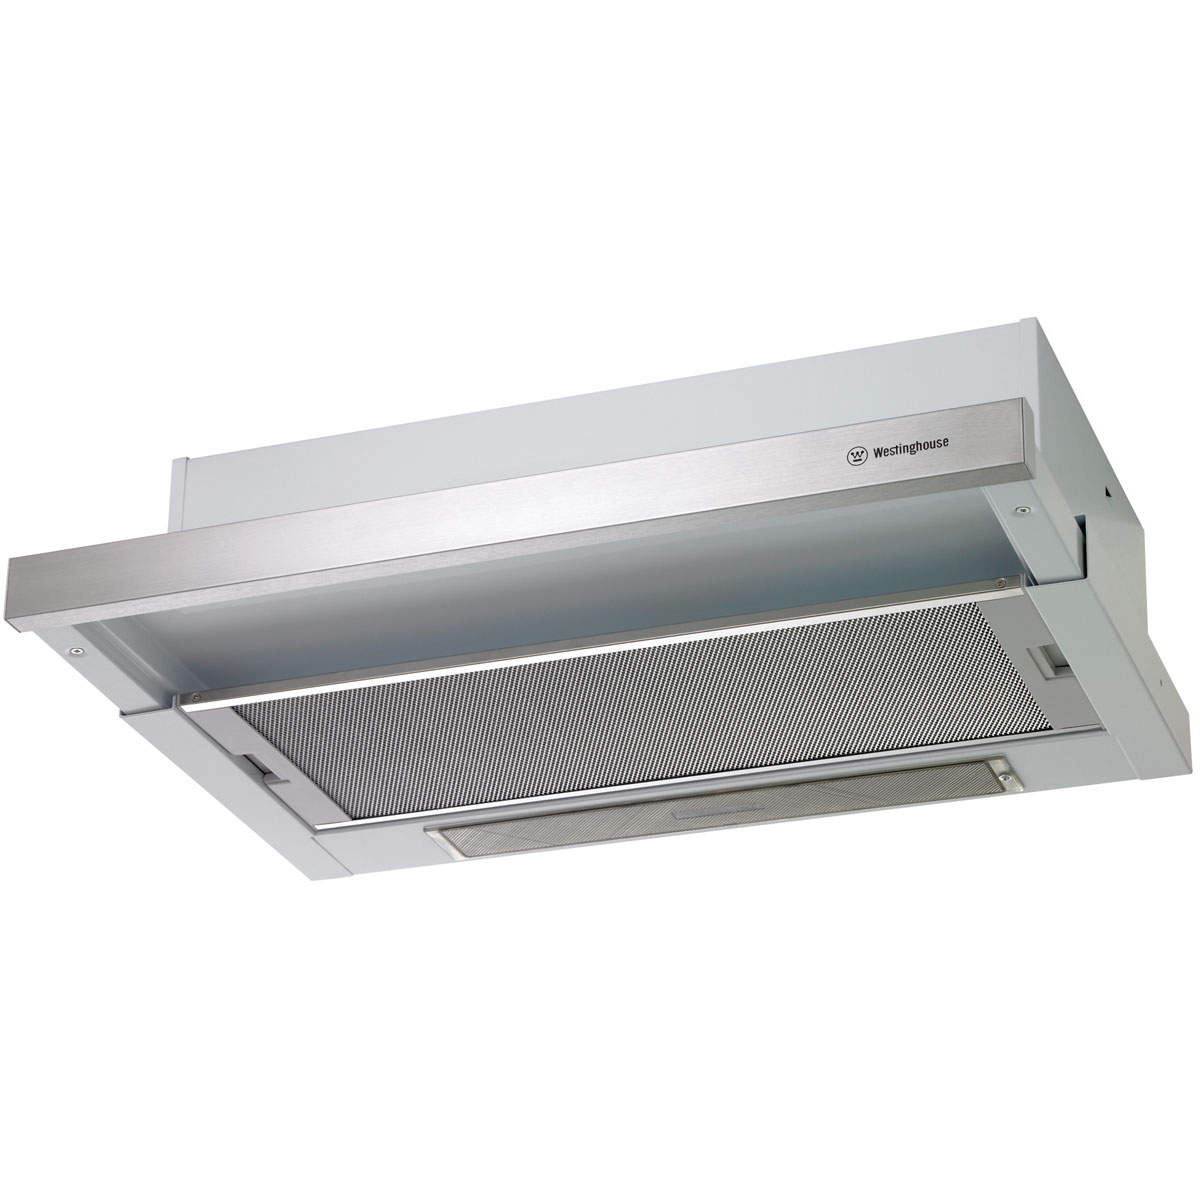 Westinghouse WRH605IS Retractable Rangehood